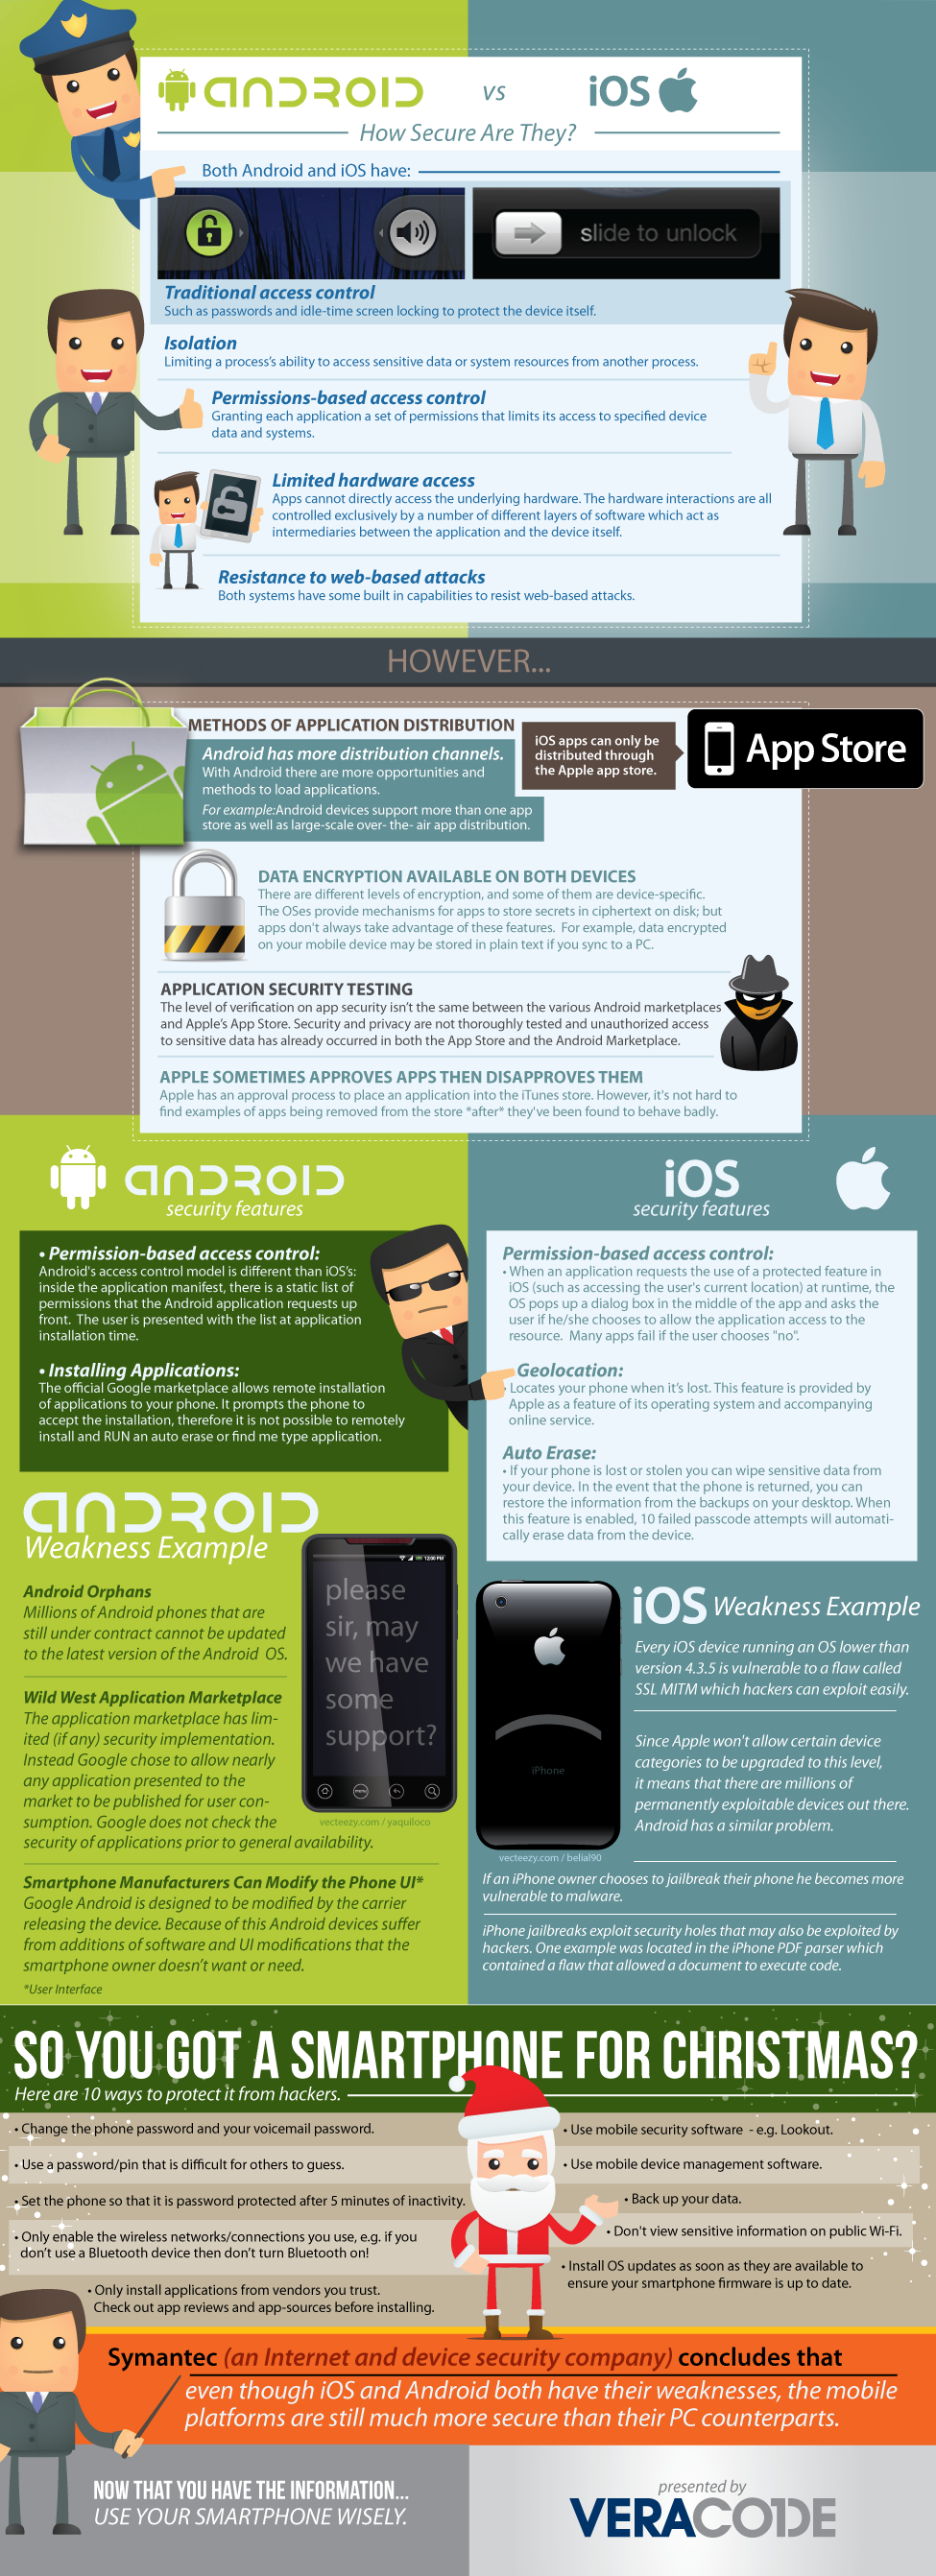 android vs ios securite - Sécurité - Android vs iOS